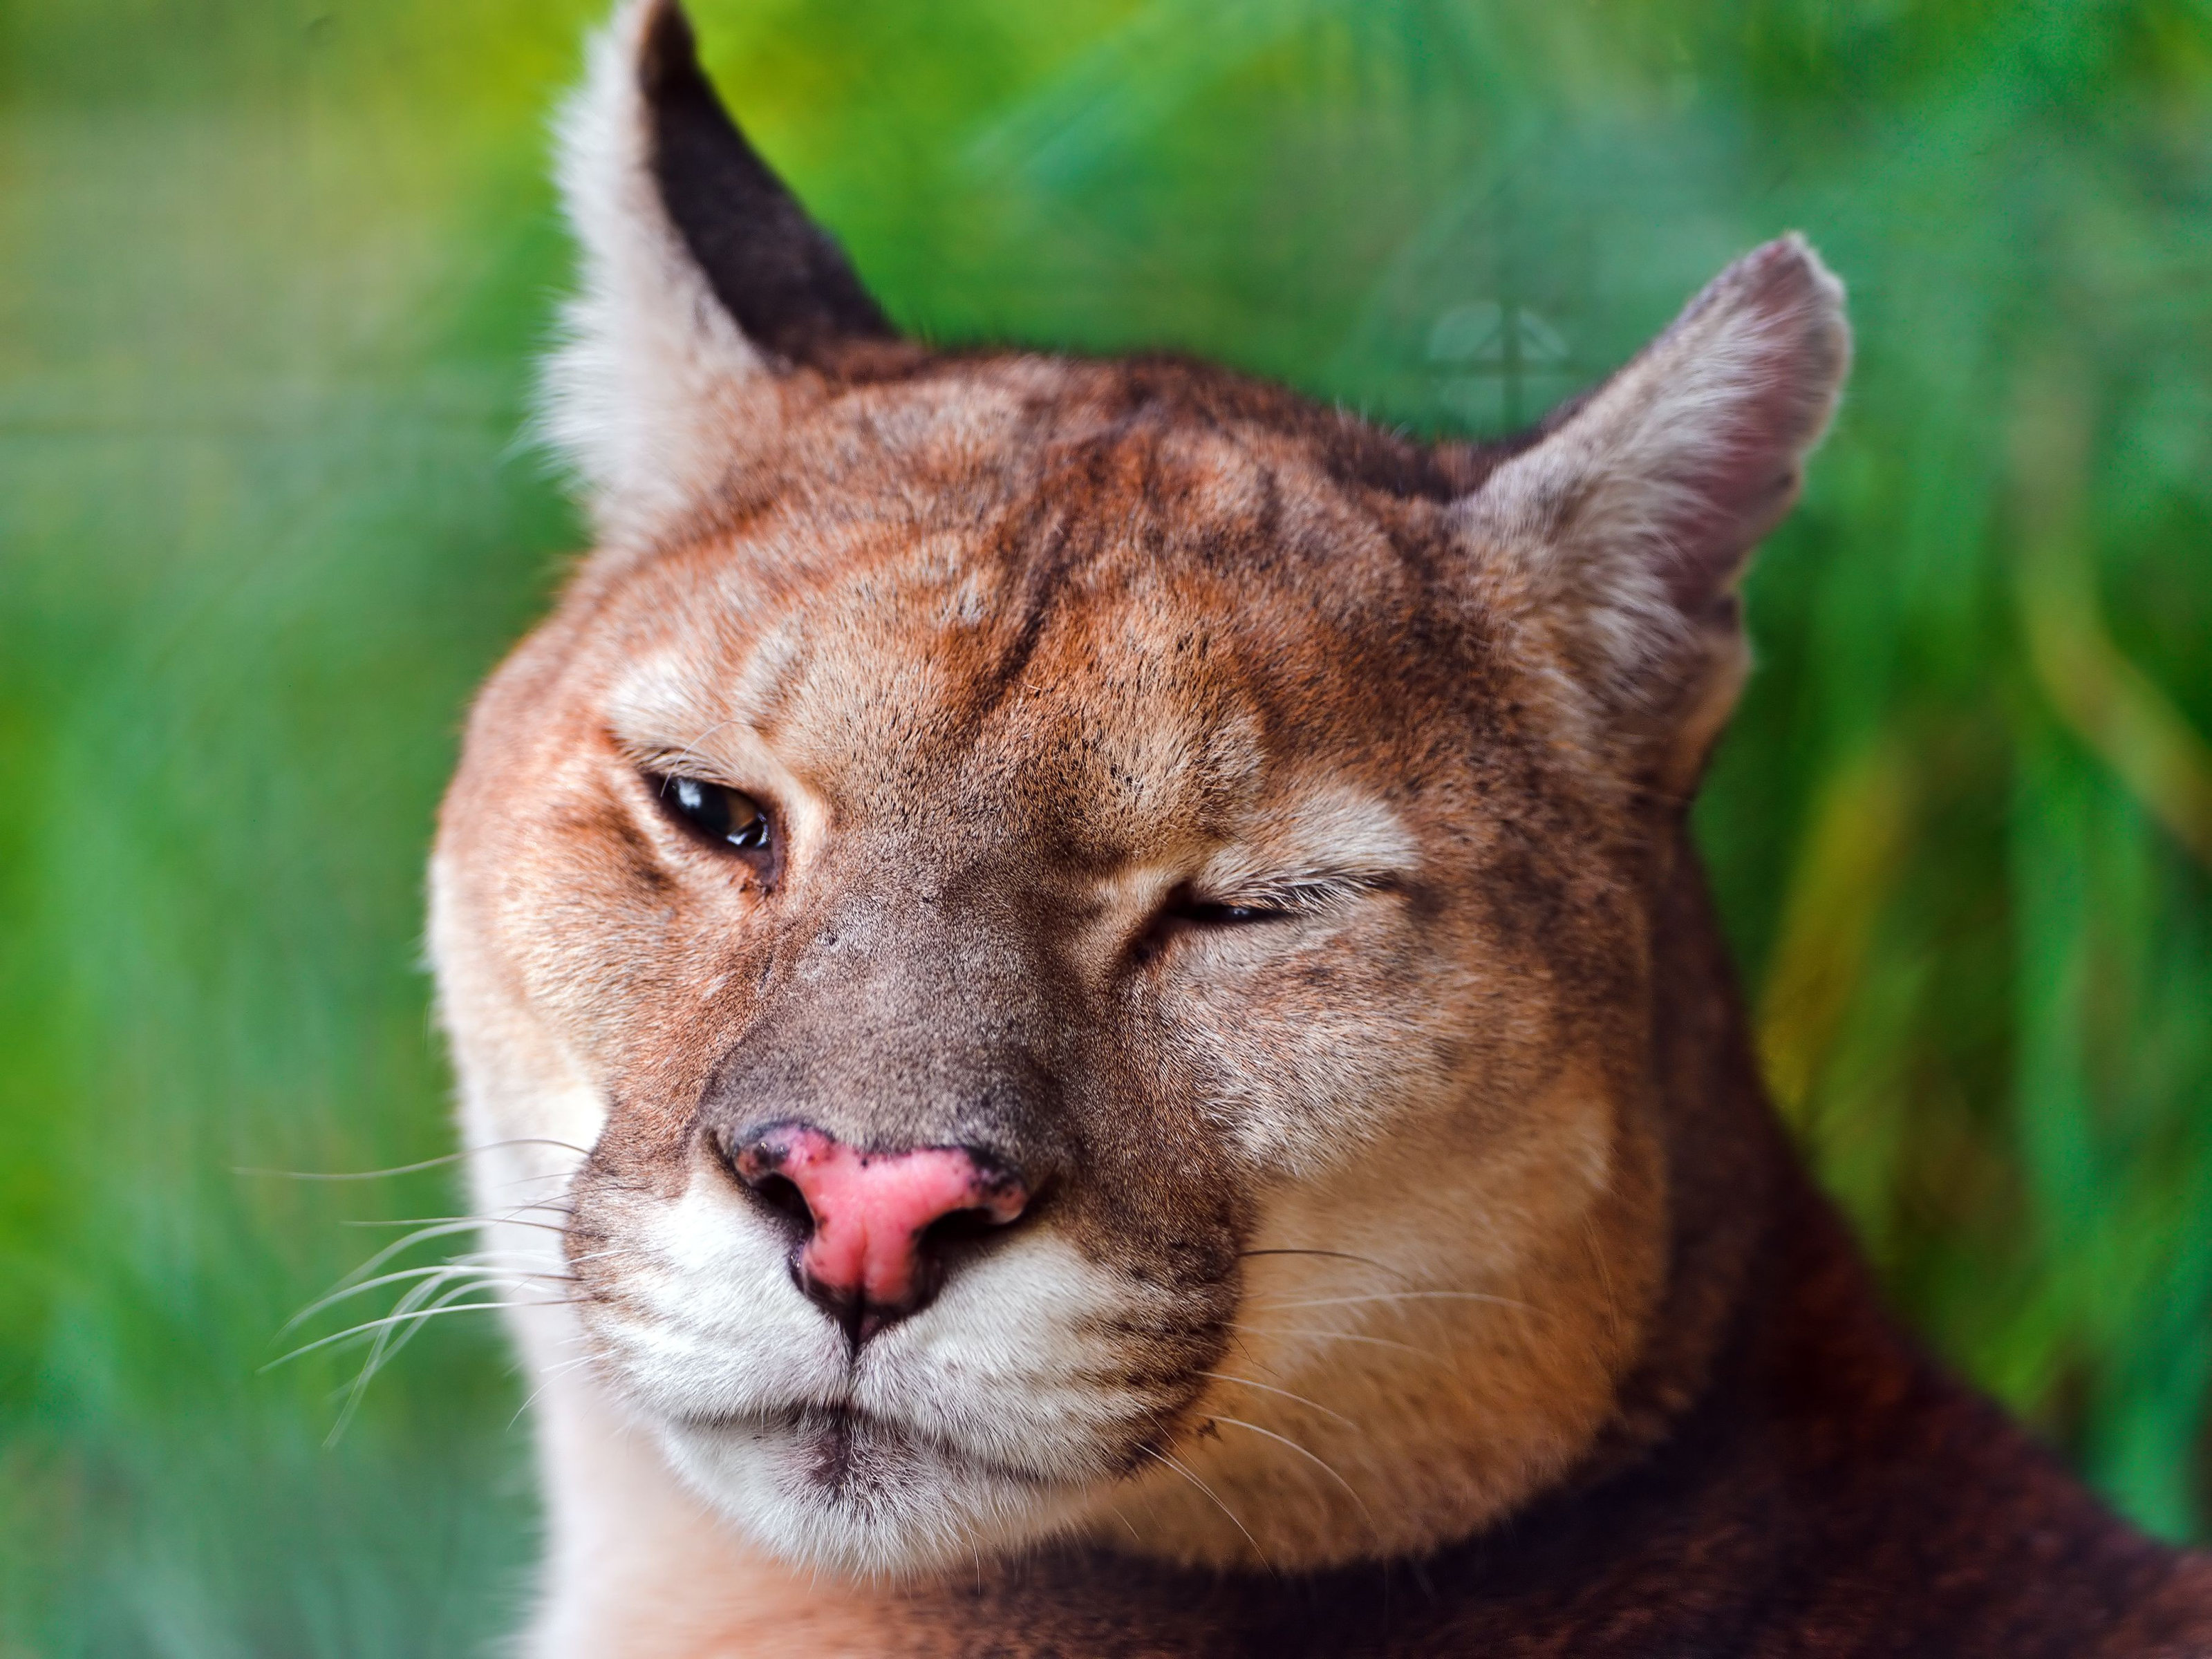 Download hd 3200x2400 Cougar PC background ID:81792 for free